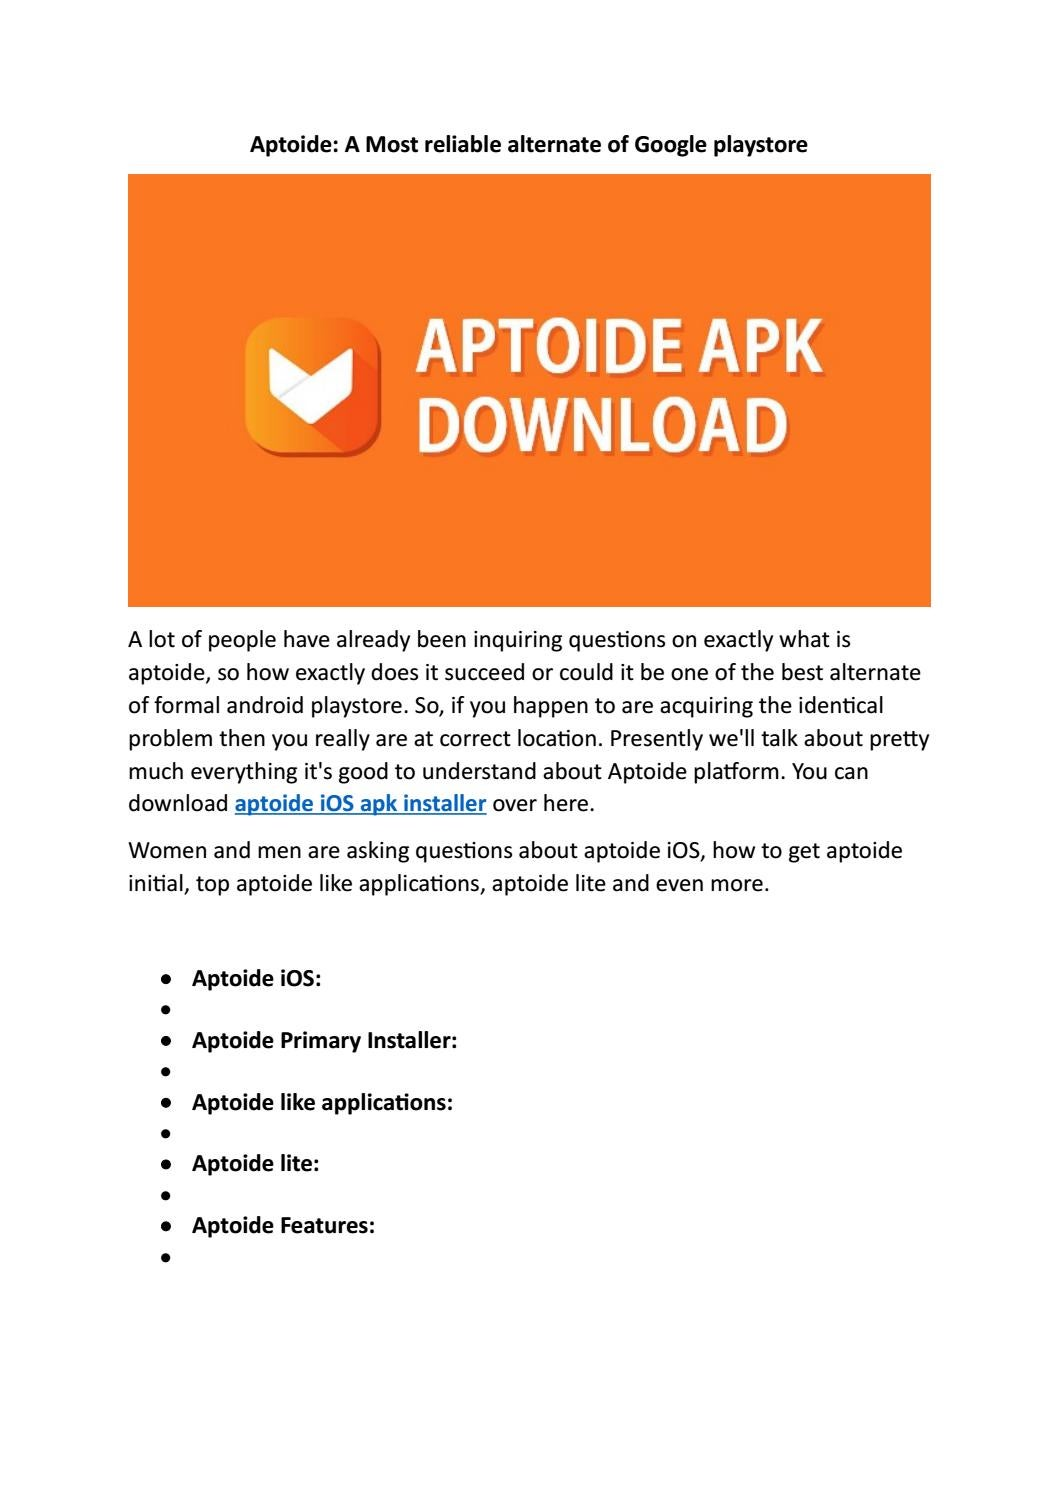 Aptoide: Everything You need to know about the App by